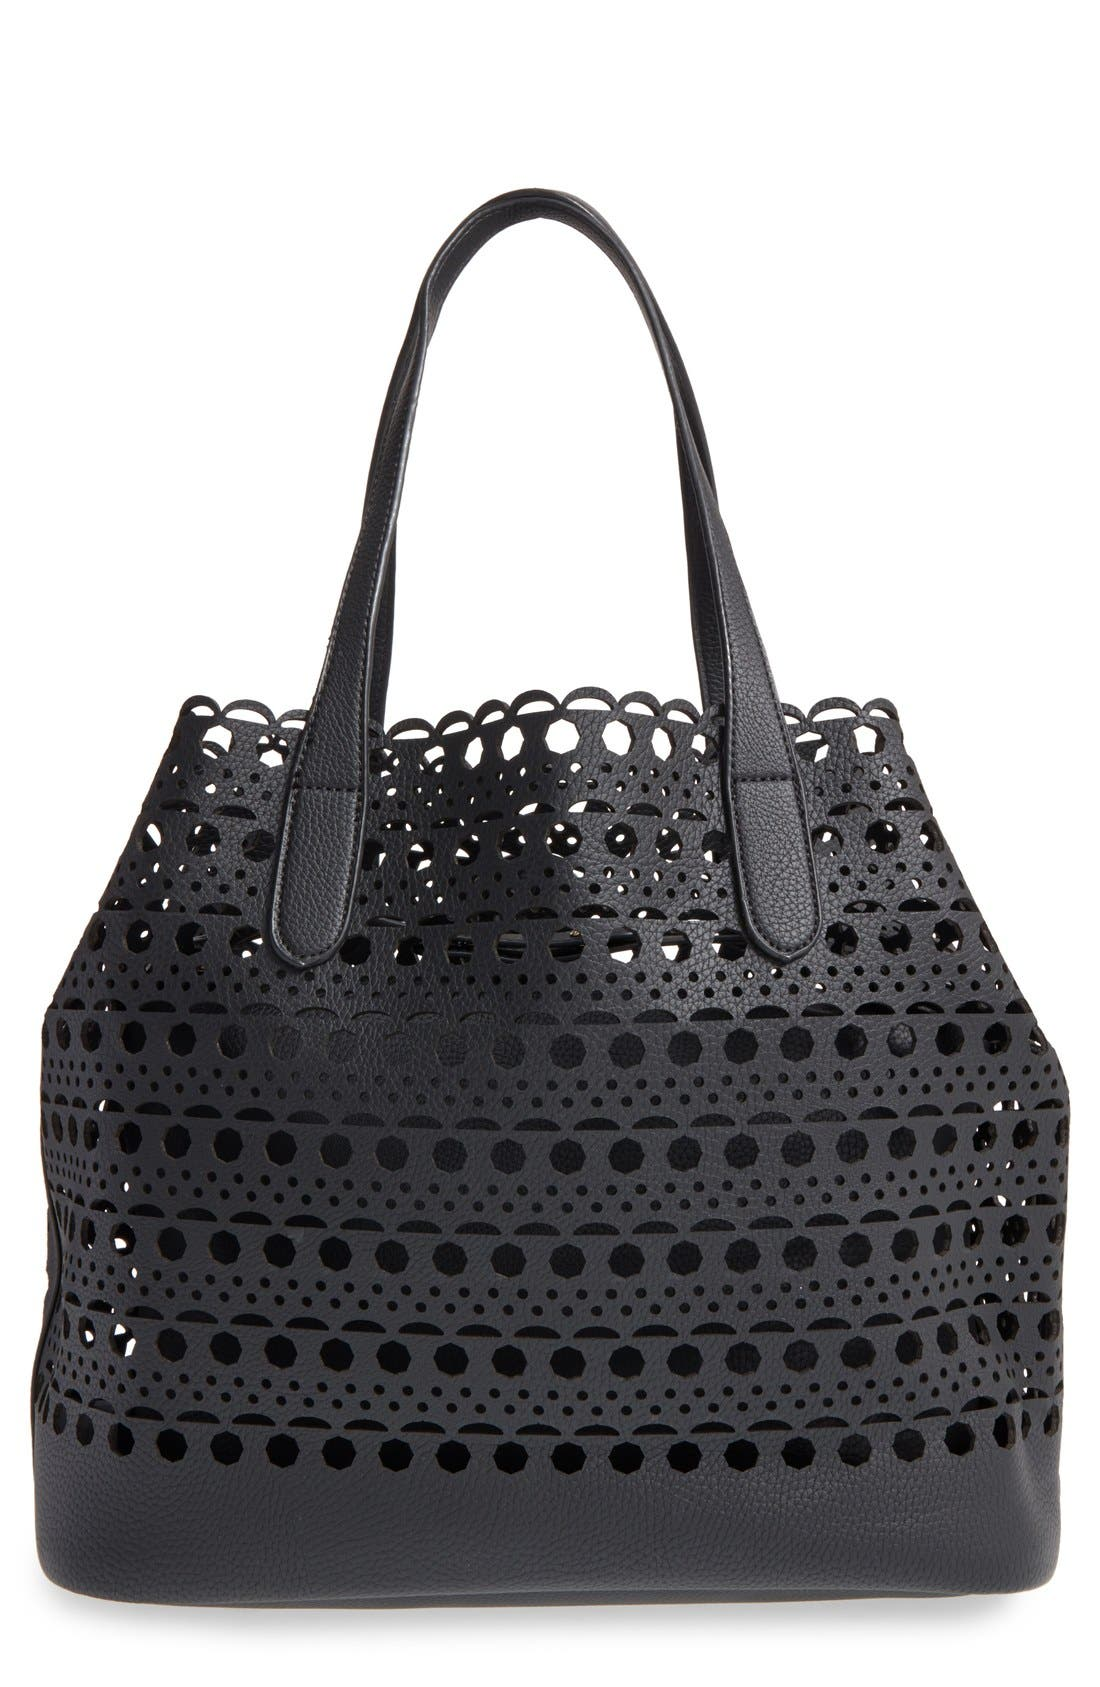 Street Level Perforated Faux Leather Tote with Pouch